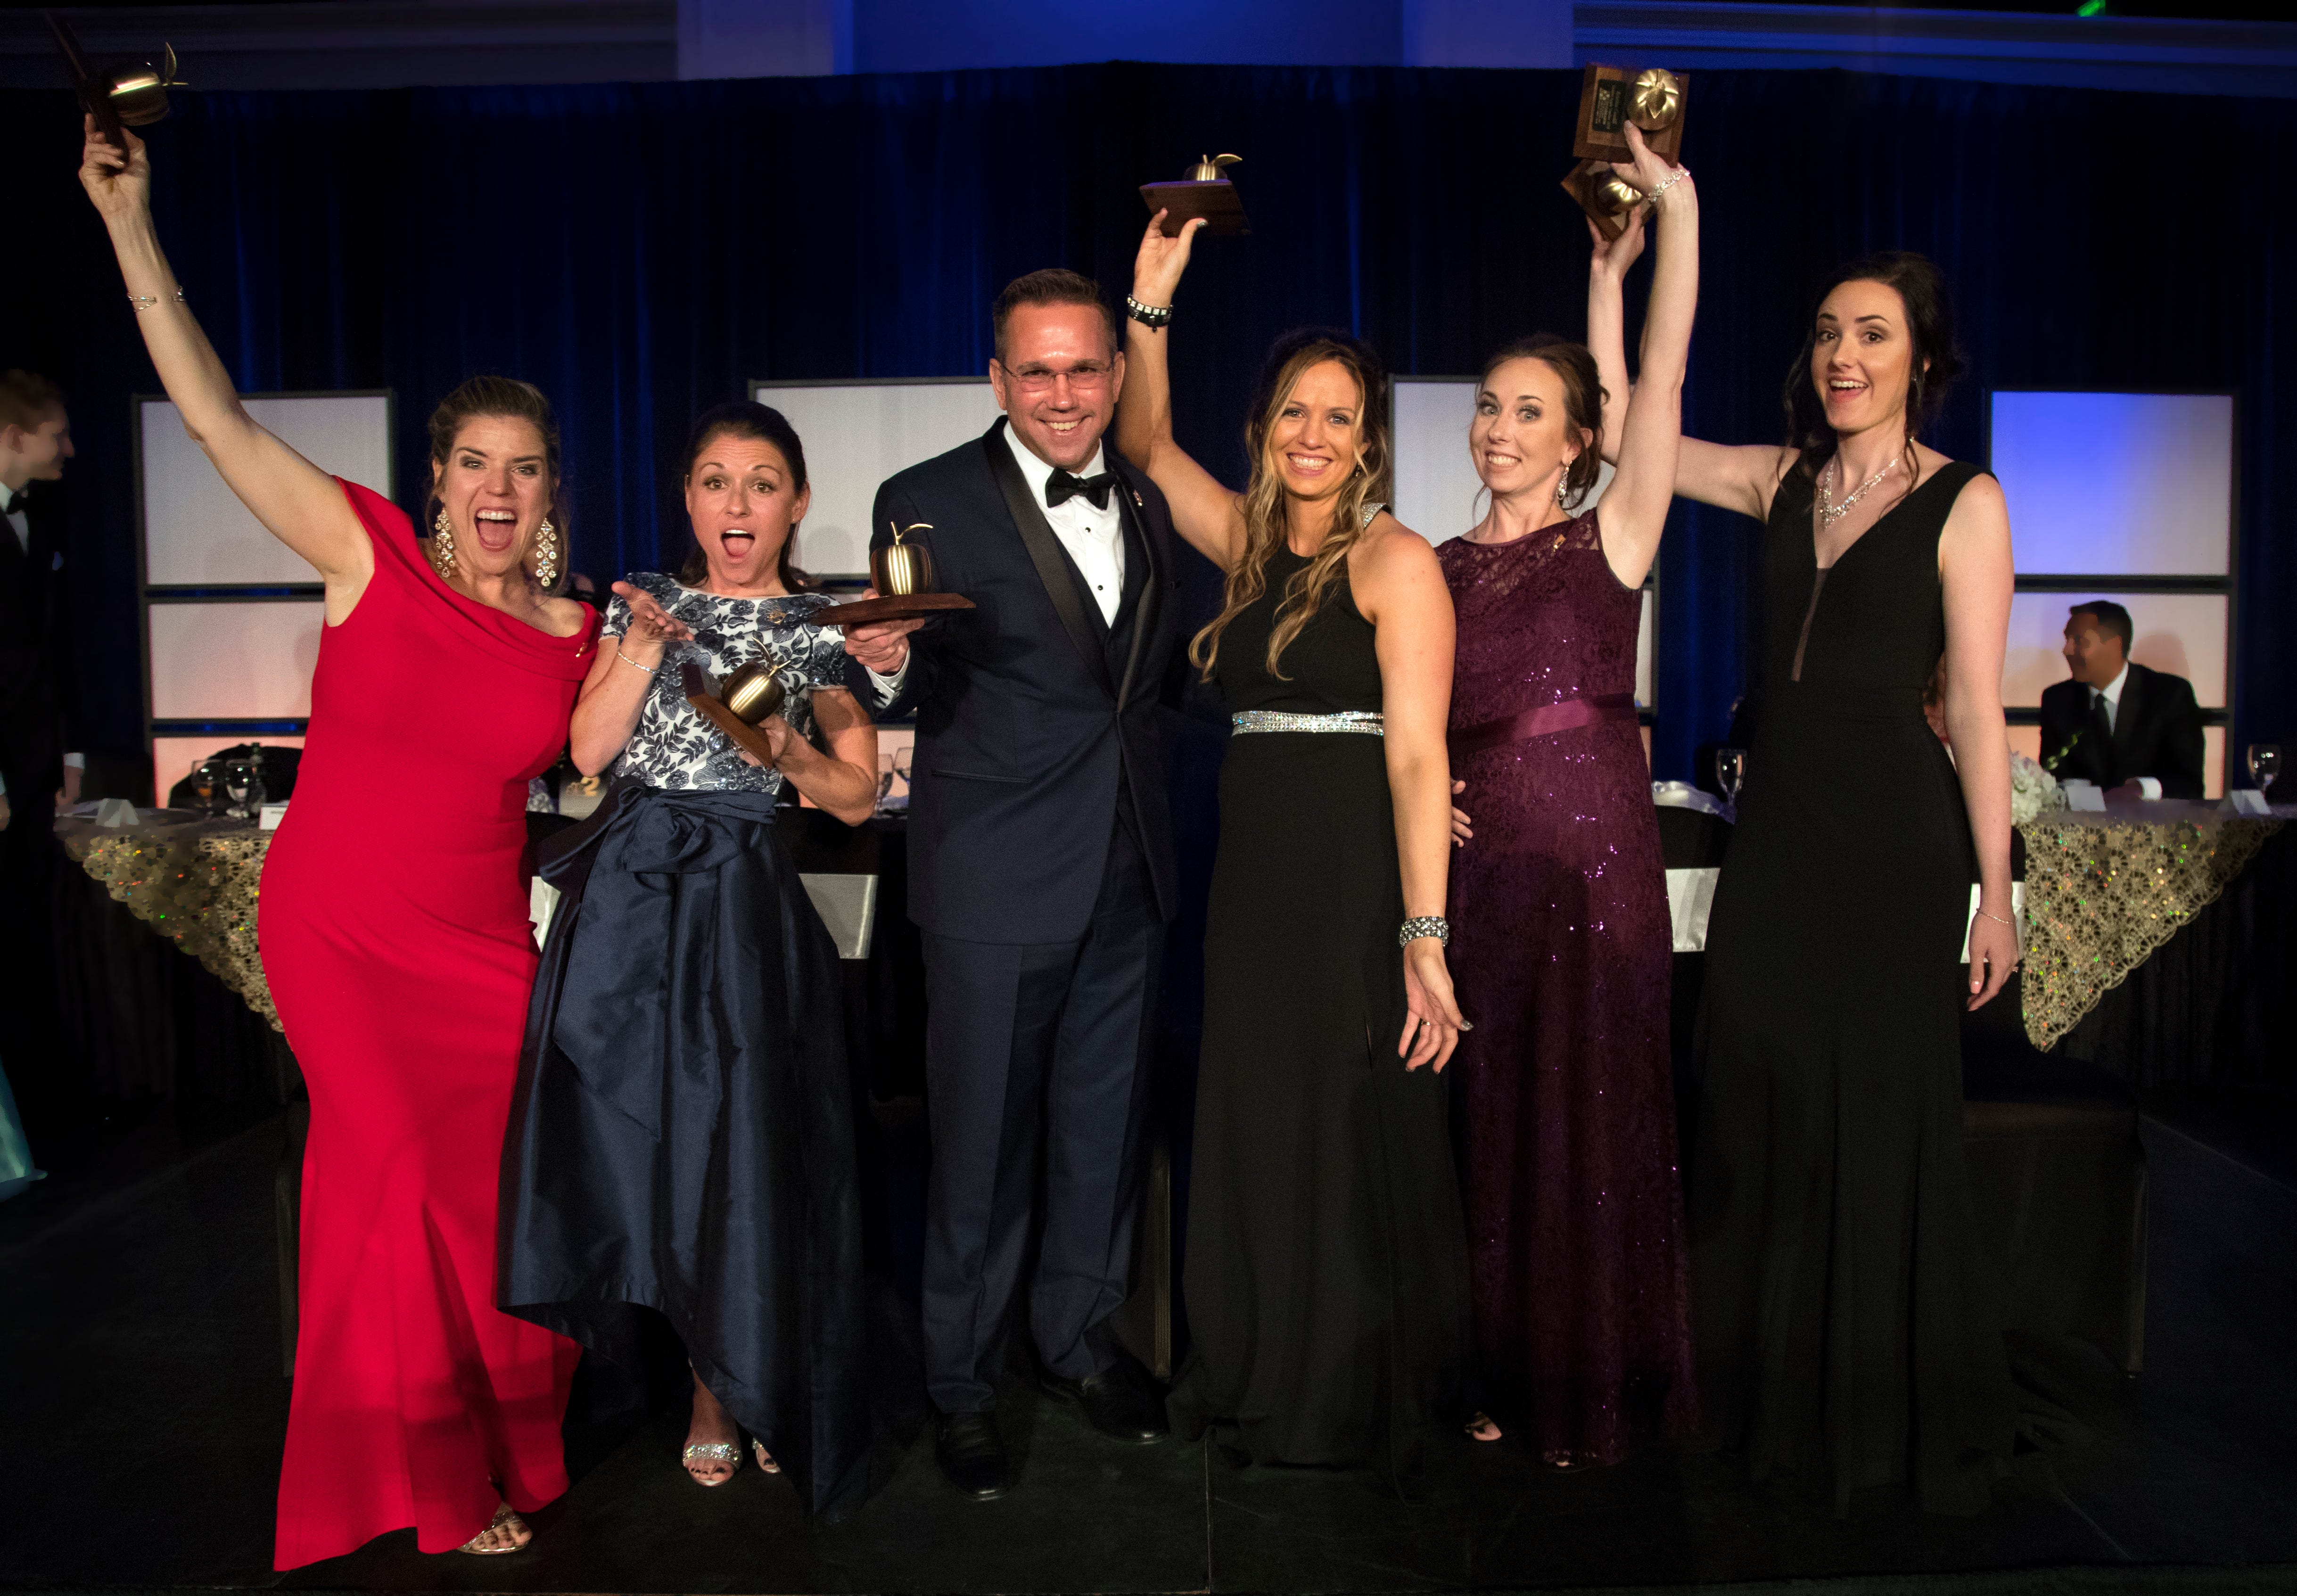 2019 Golden Apple teachers Courtney Black, left, Kristina Gale, James Rose, Stacy Anderson, Kristina Caudill and Amanda Rose are honored on Friday at the Golden Apple Teacher Recognition Banquet at the Hyatt Regency Coconut Point in Bonita Springs.